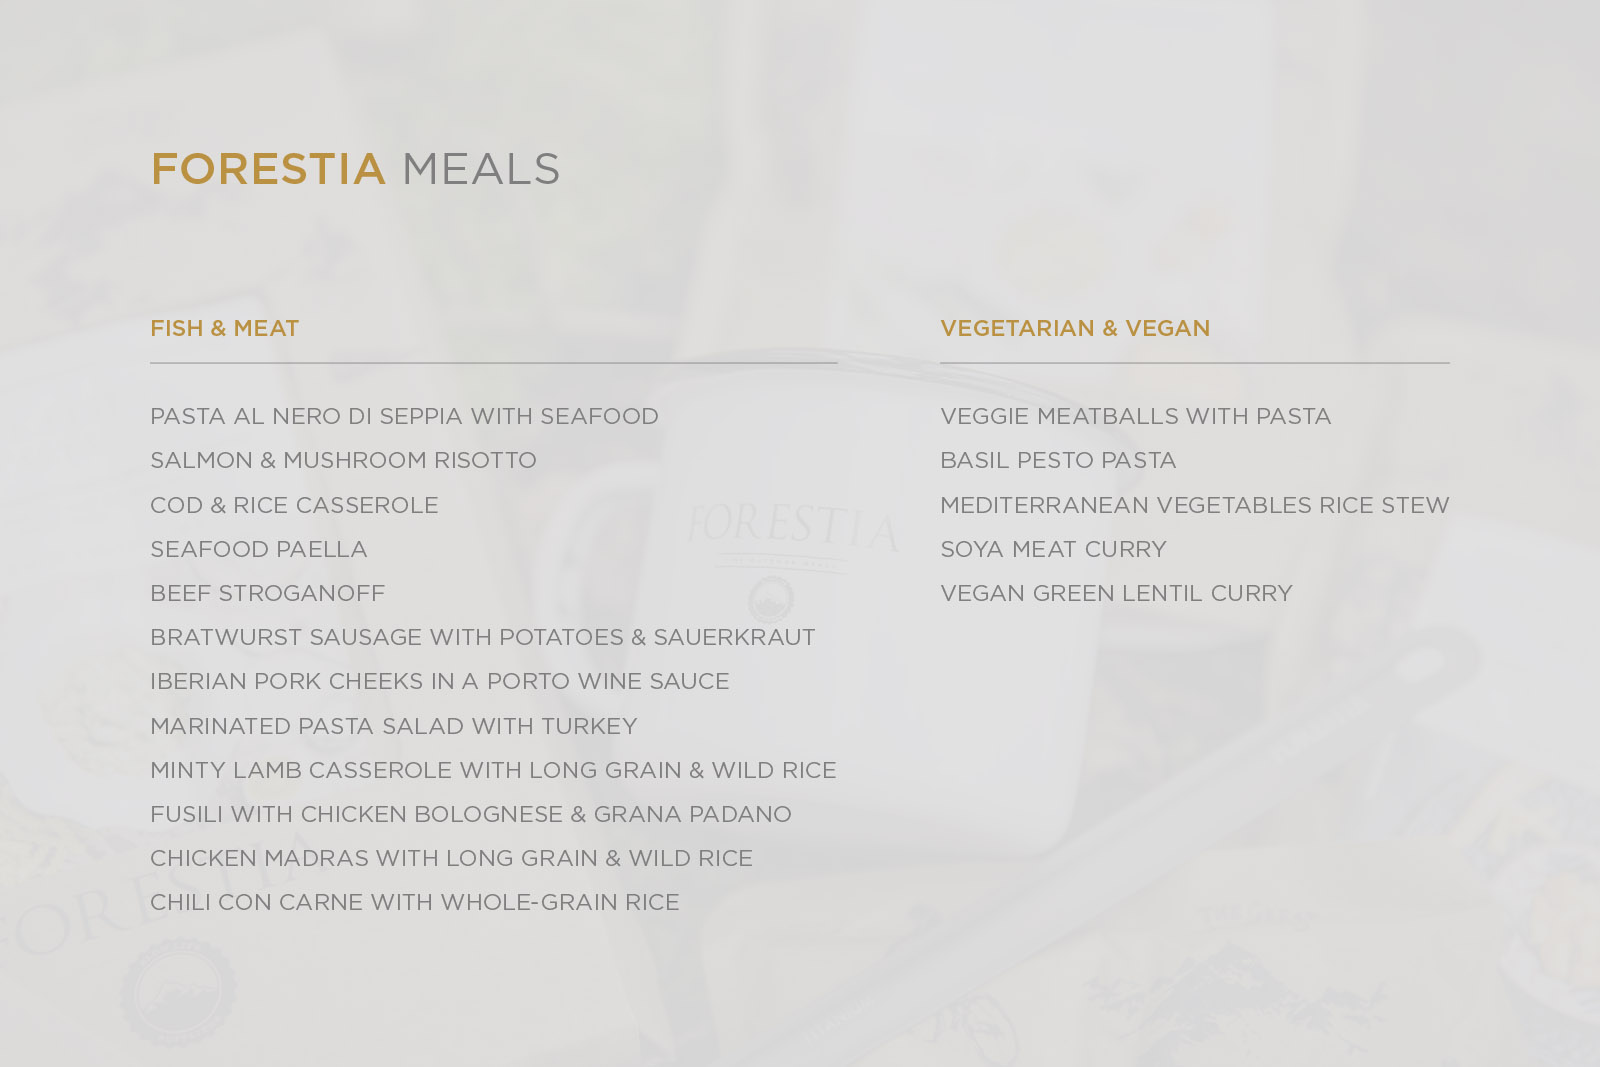 Forestia outdoor meals